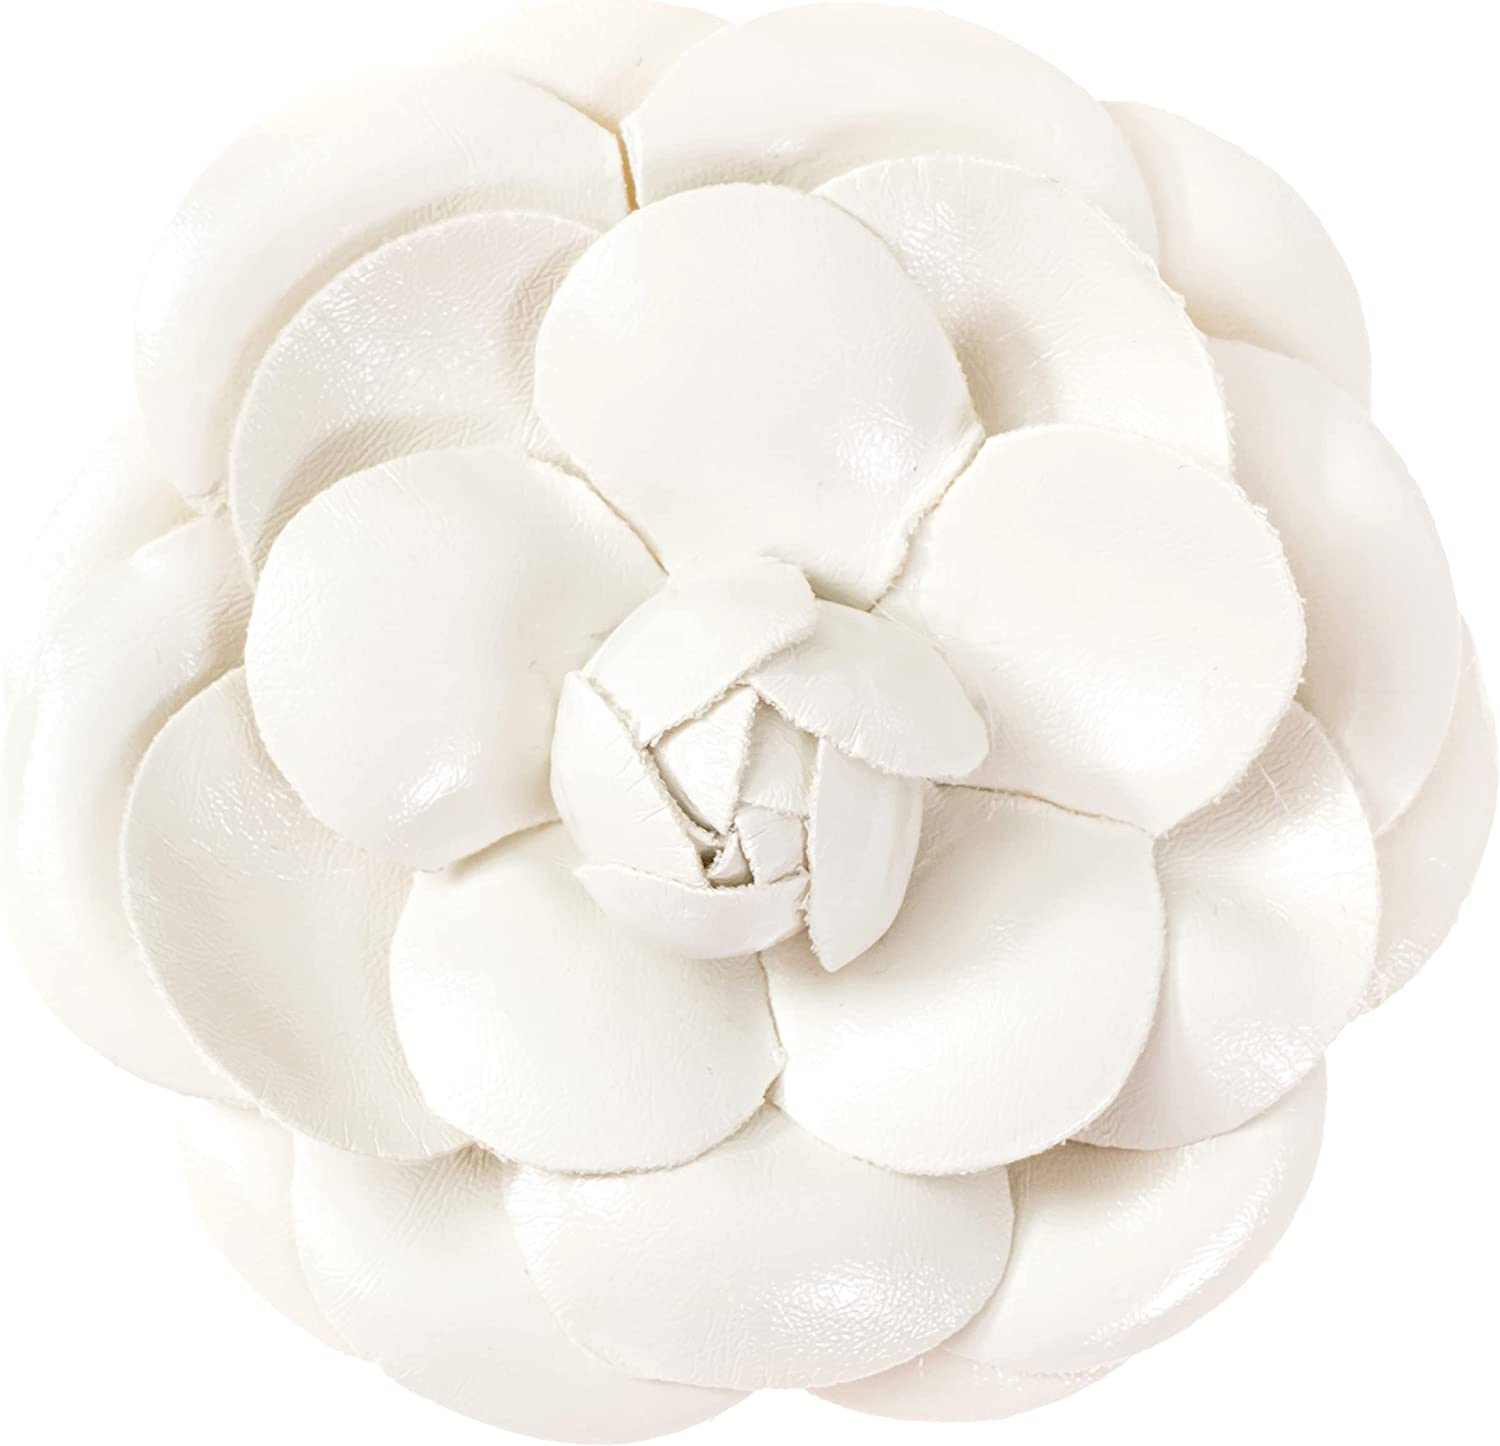 MISASHA fashion jewelry women's camellia flower pin brooch with organza gift bag